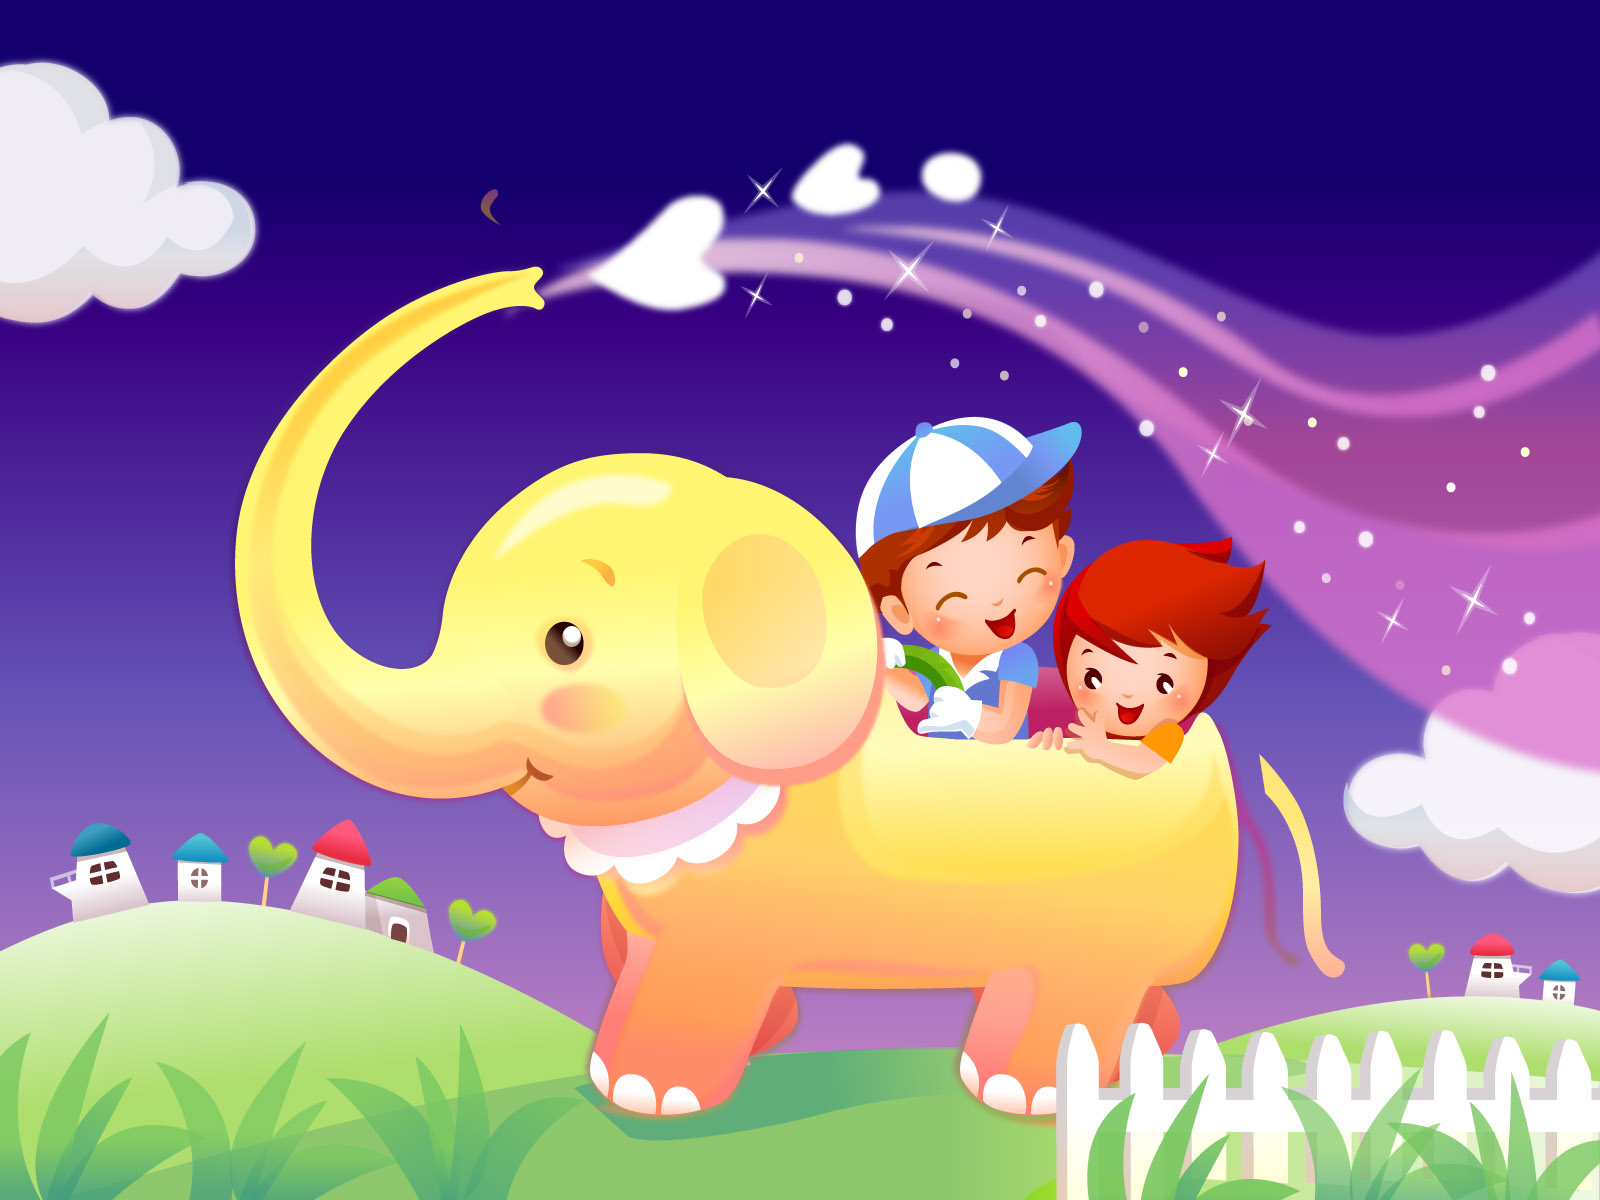 Nice wallpapers Childhood Dream 1600x1200px